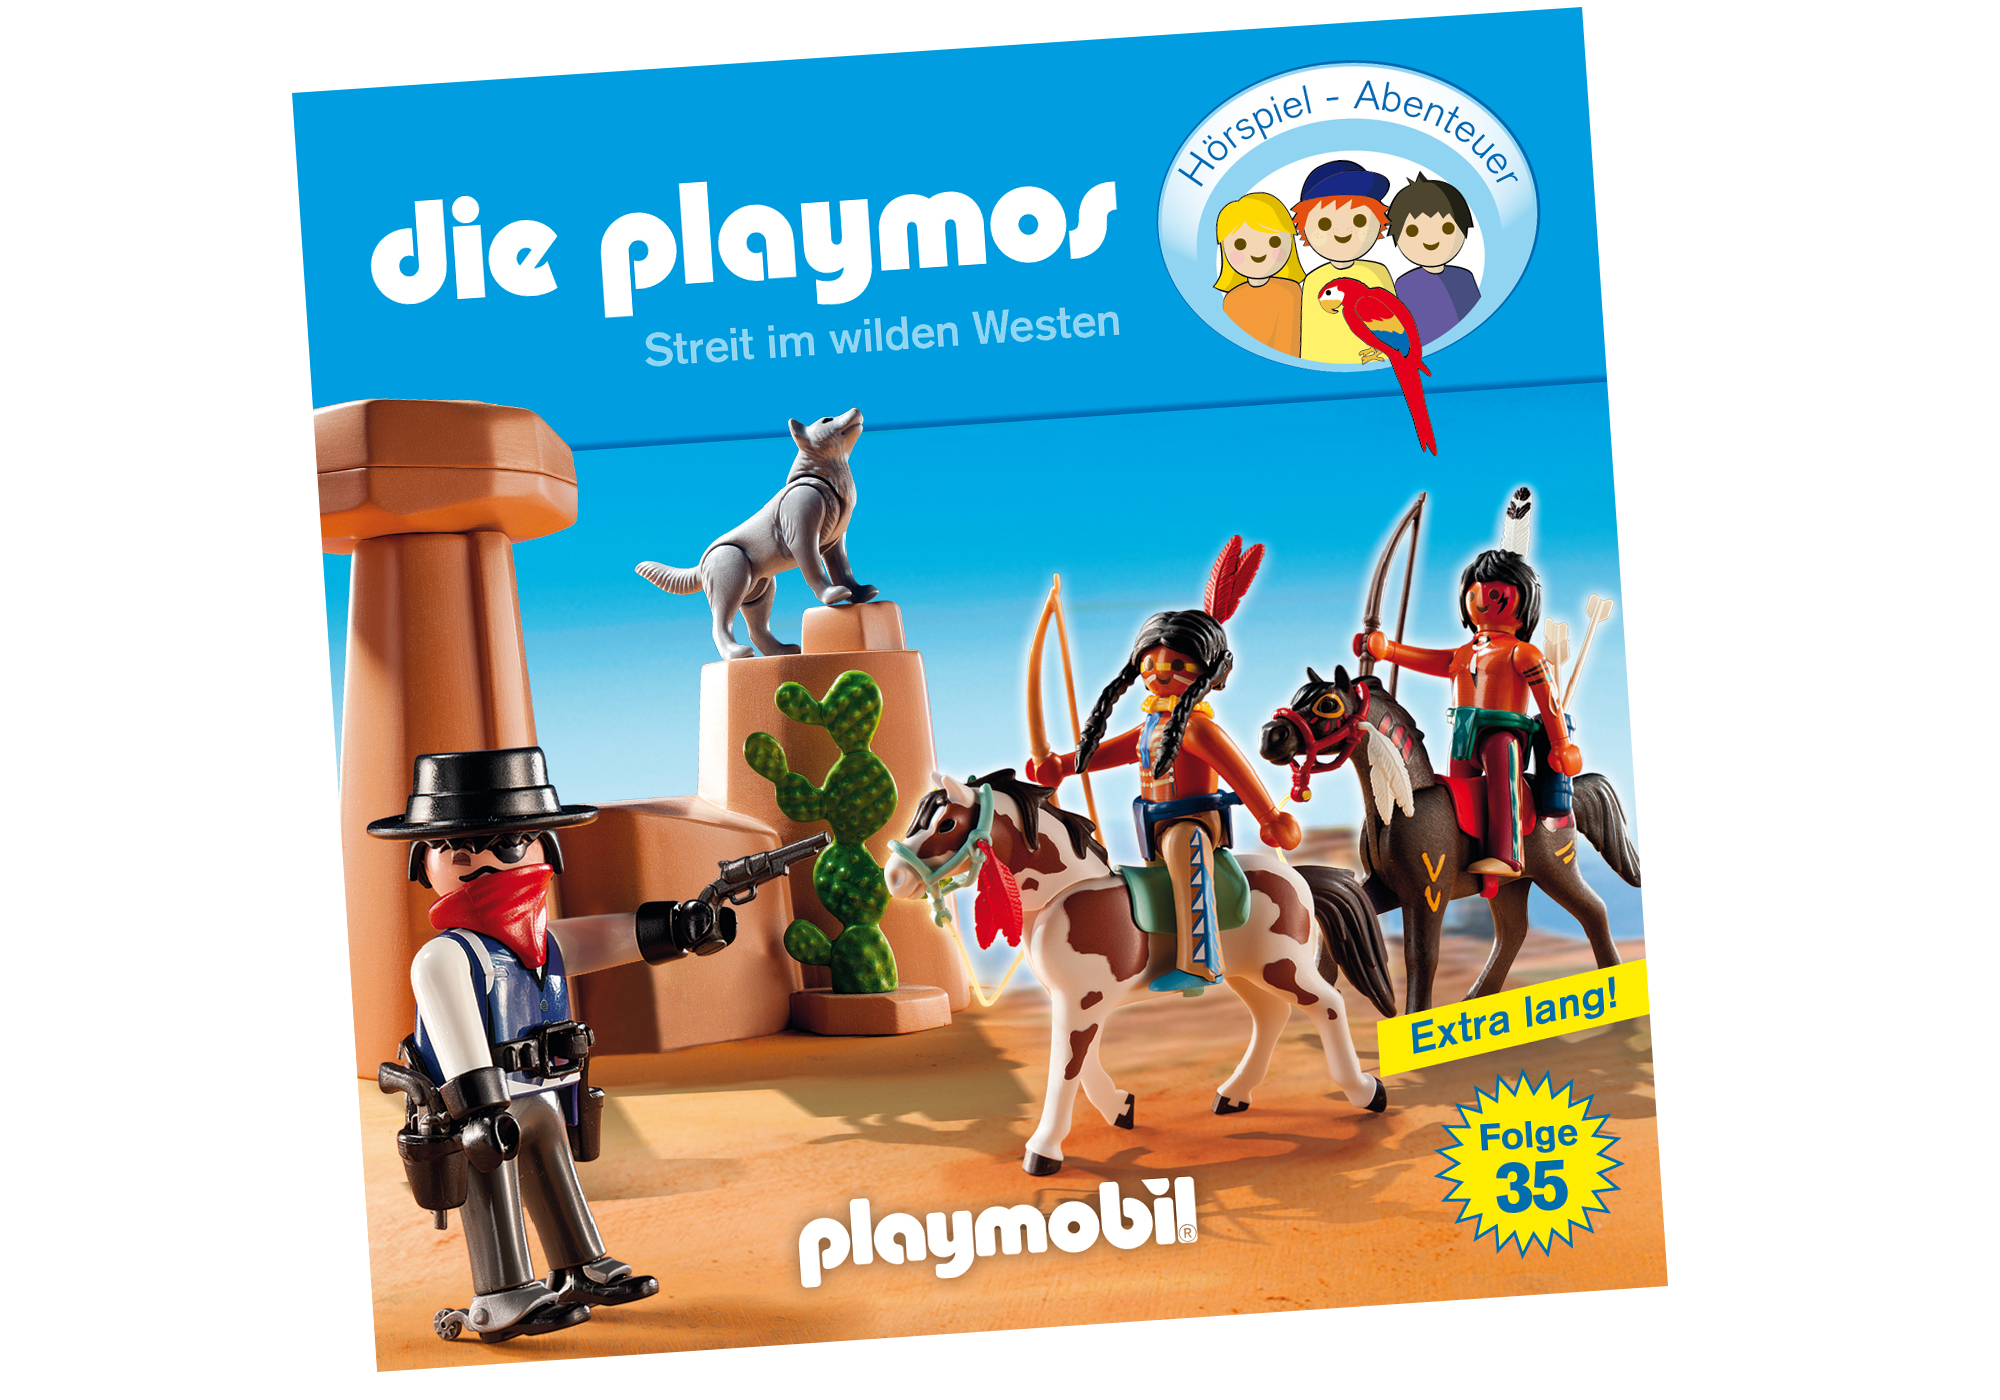 http://media.playmobil.com/i/playmobil/80446_product_detail